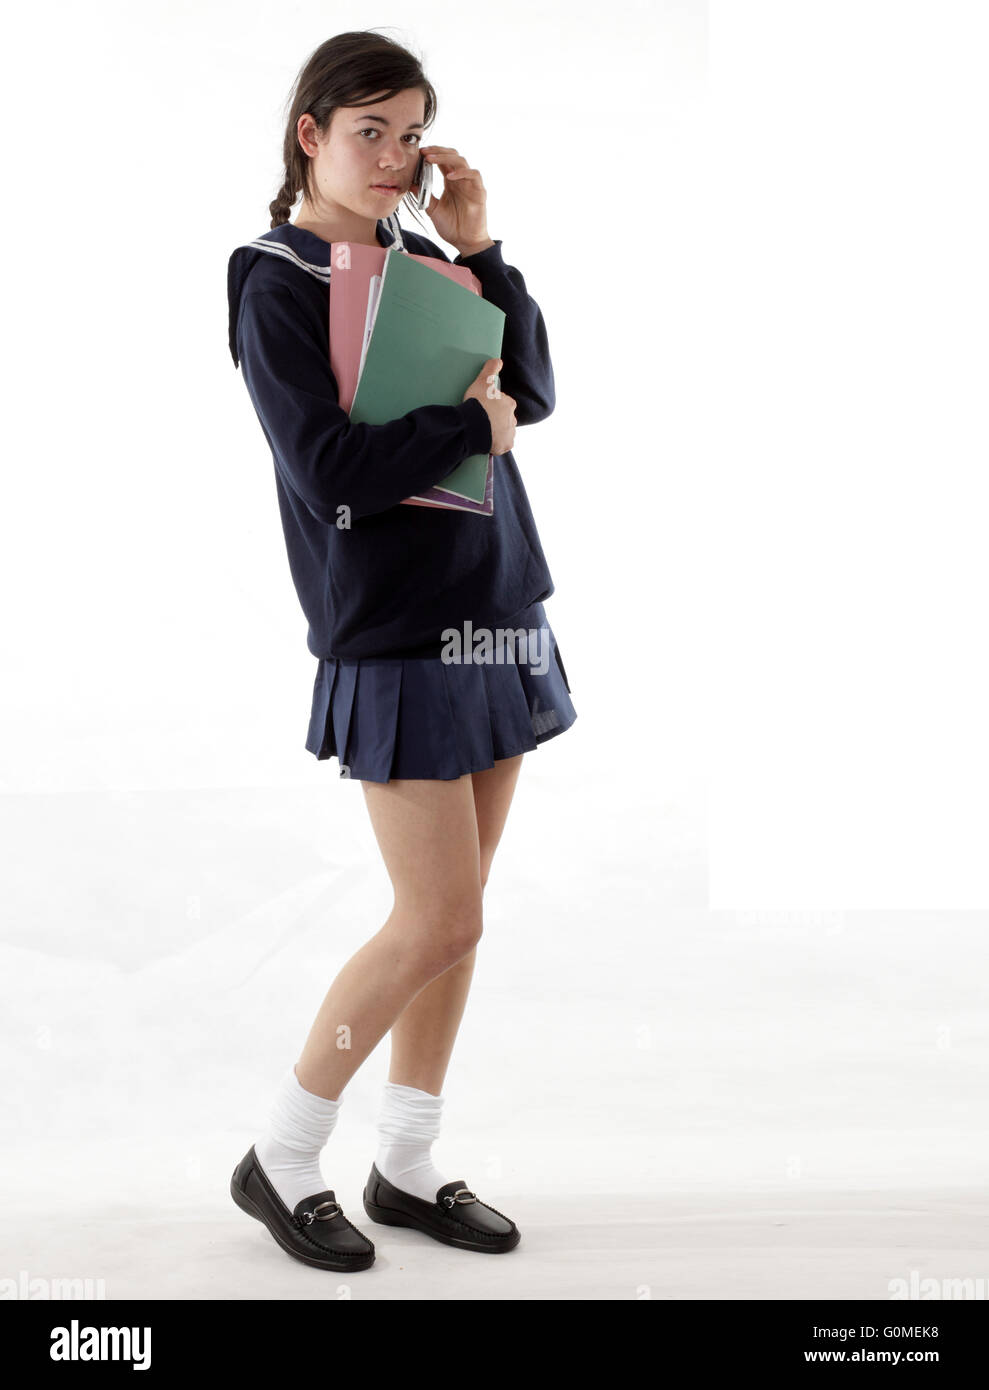 Mixed Race Young Woman Dressed In A Japanese Style Schoolgirls Stock Photo 103712764 -5434